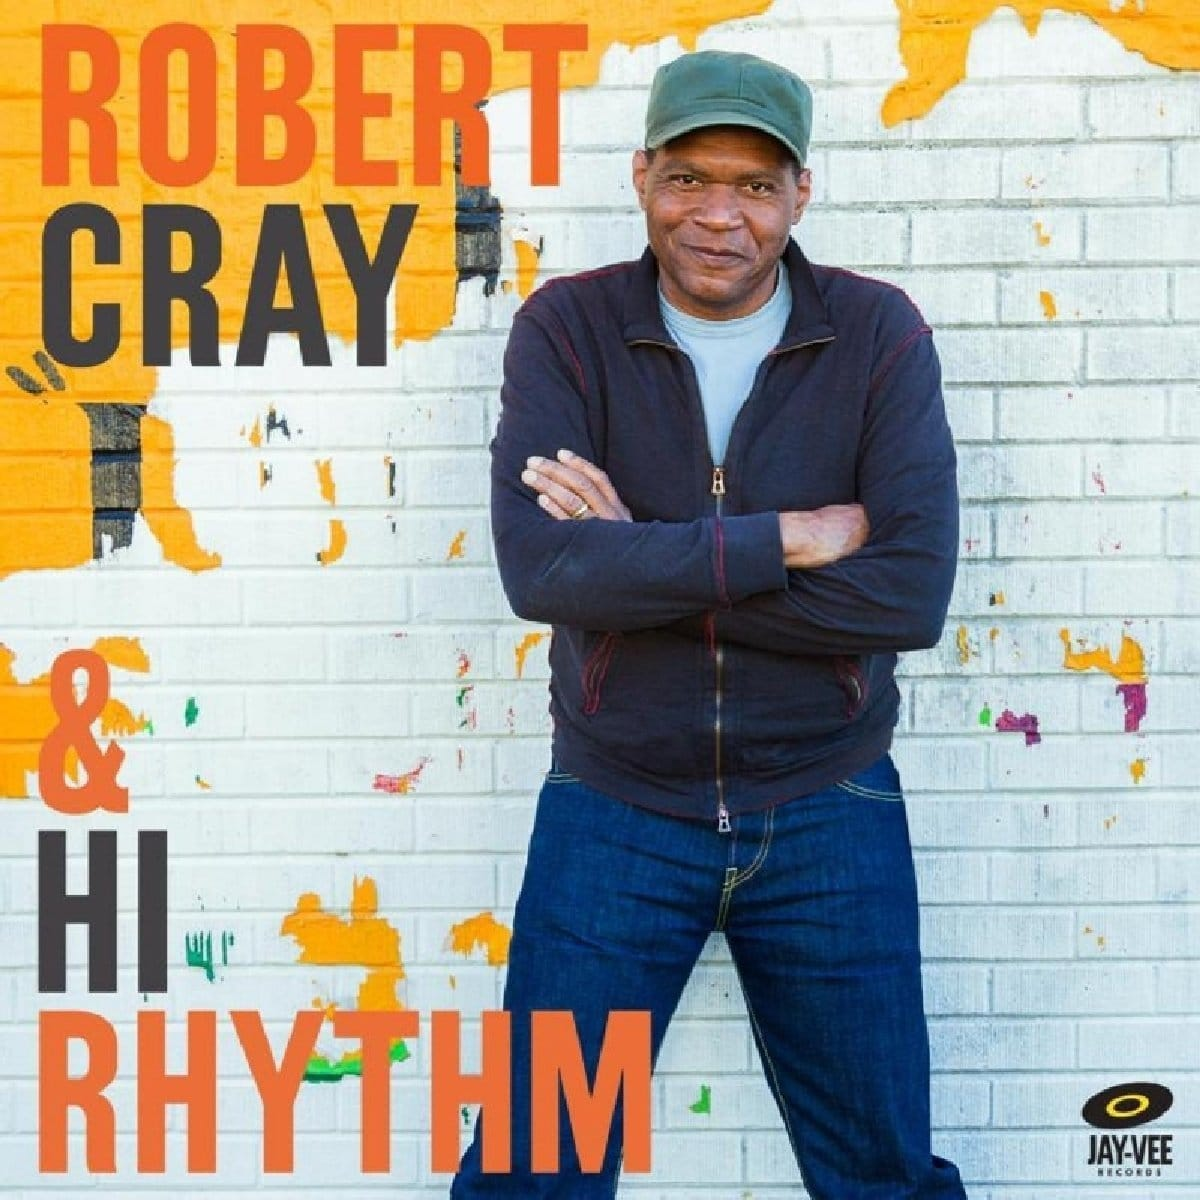 Robert Cray Tour Reviews